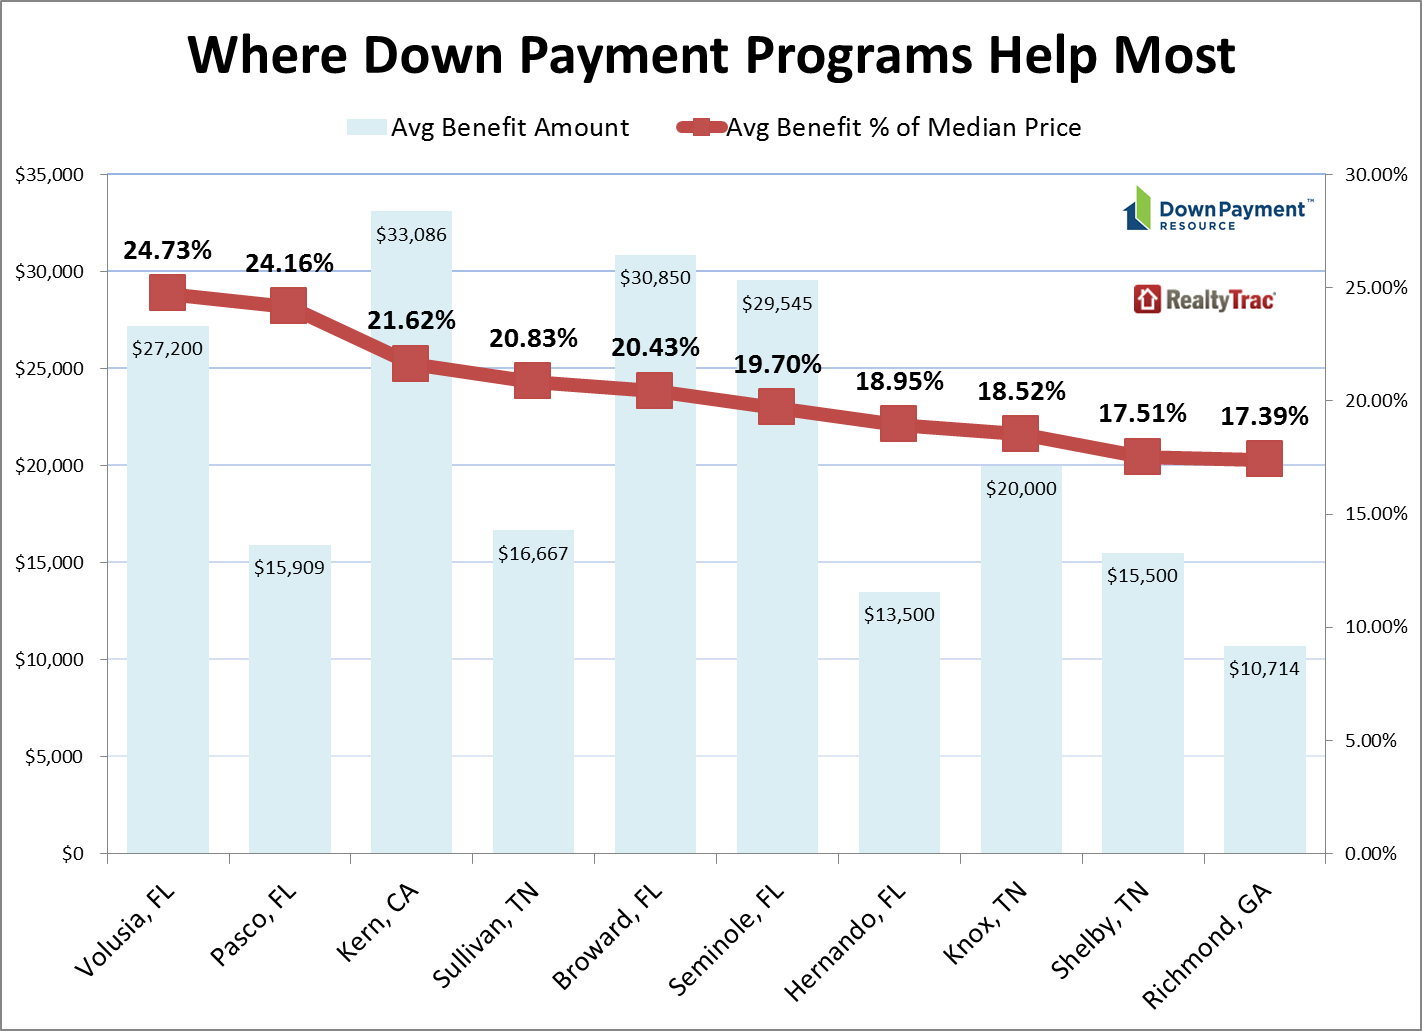 2015 low down payment buyer affordability & accessibility analysis